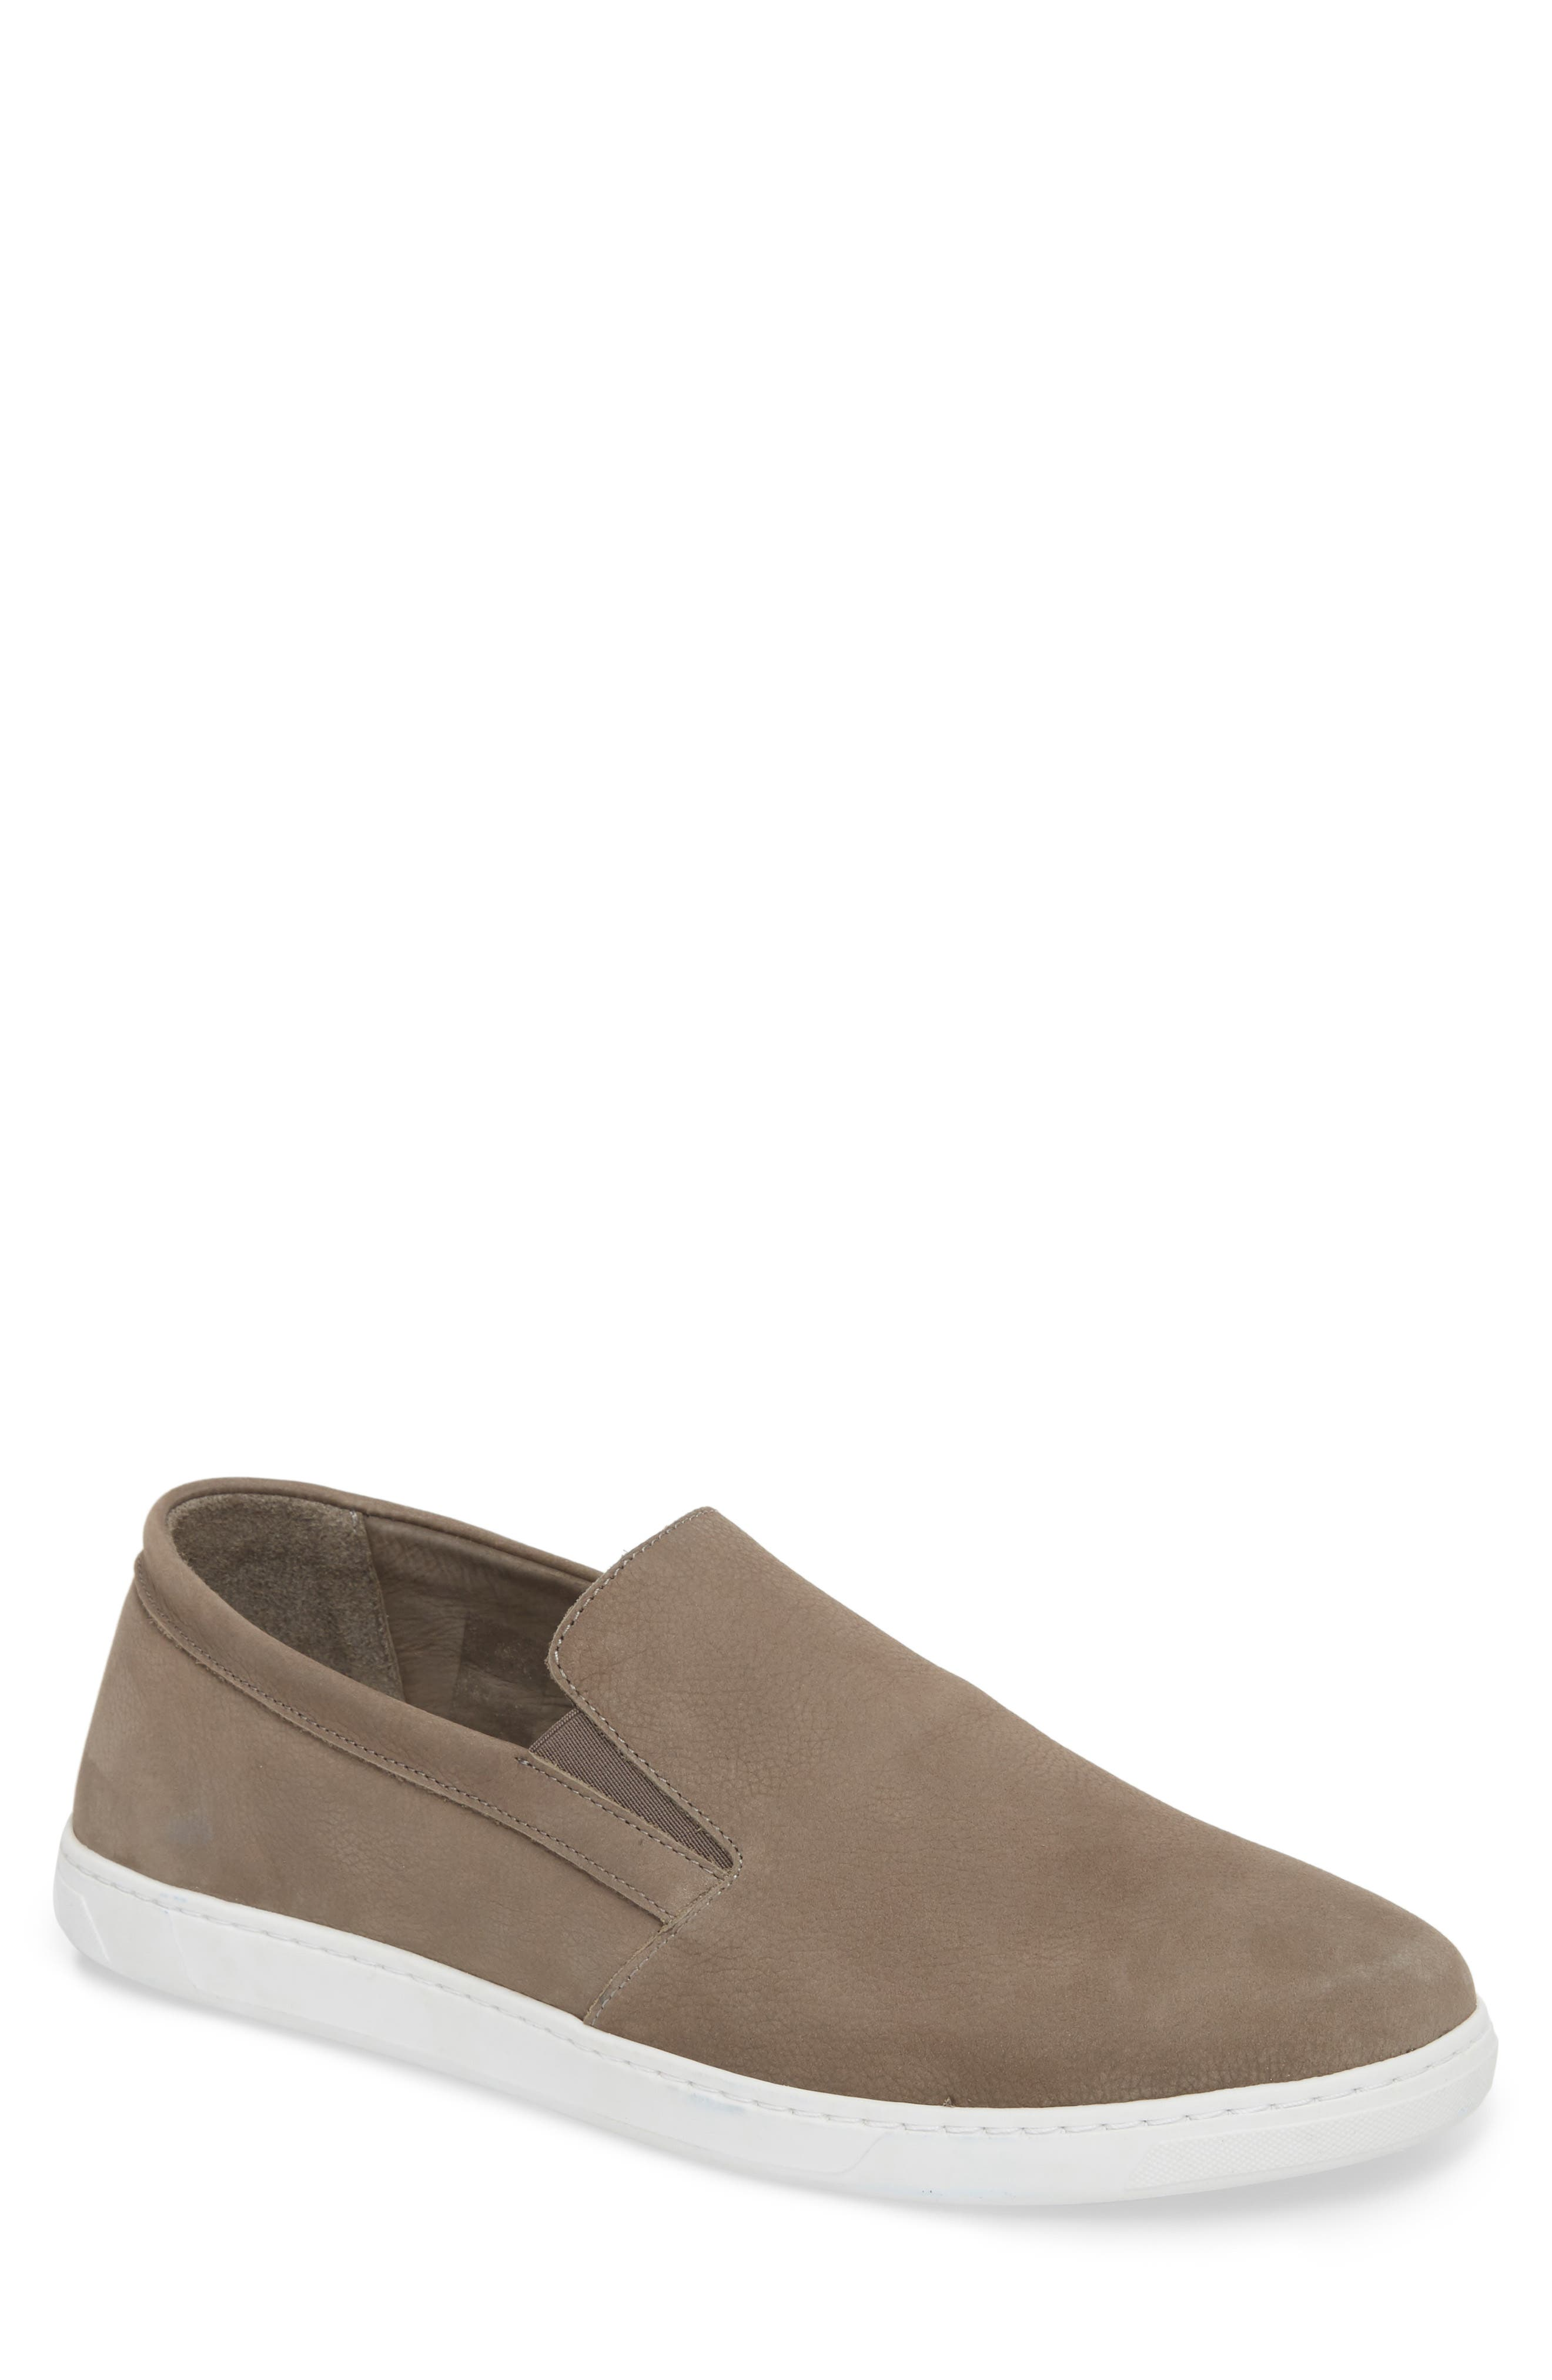 VINCE CAMUTO Neff Slip-On Sneaker, Main, color, DARK GREY LEATHER